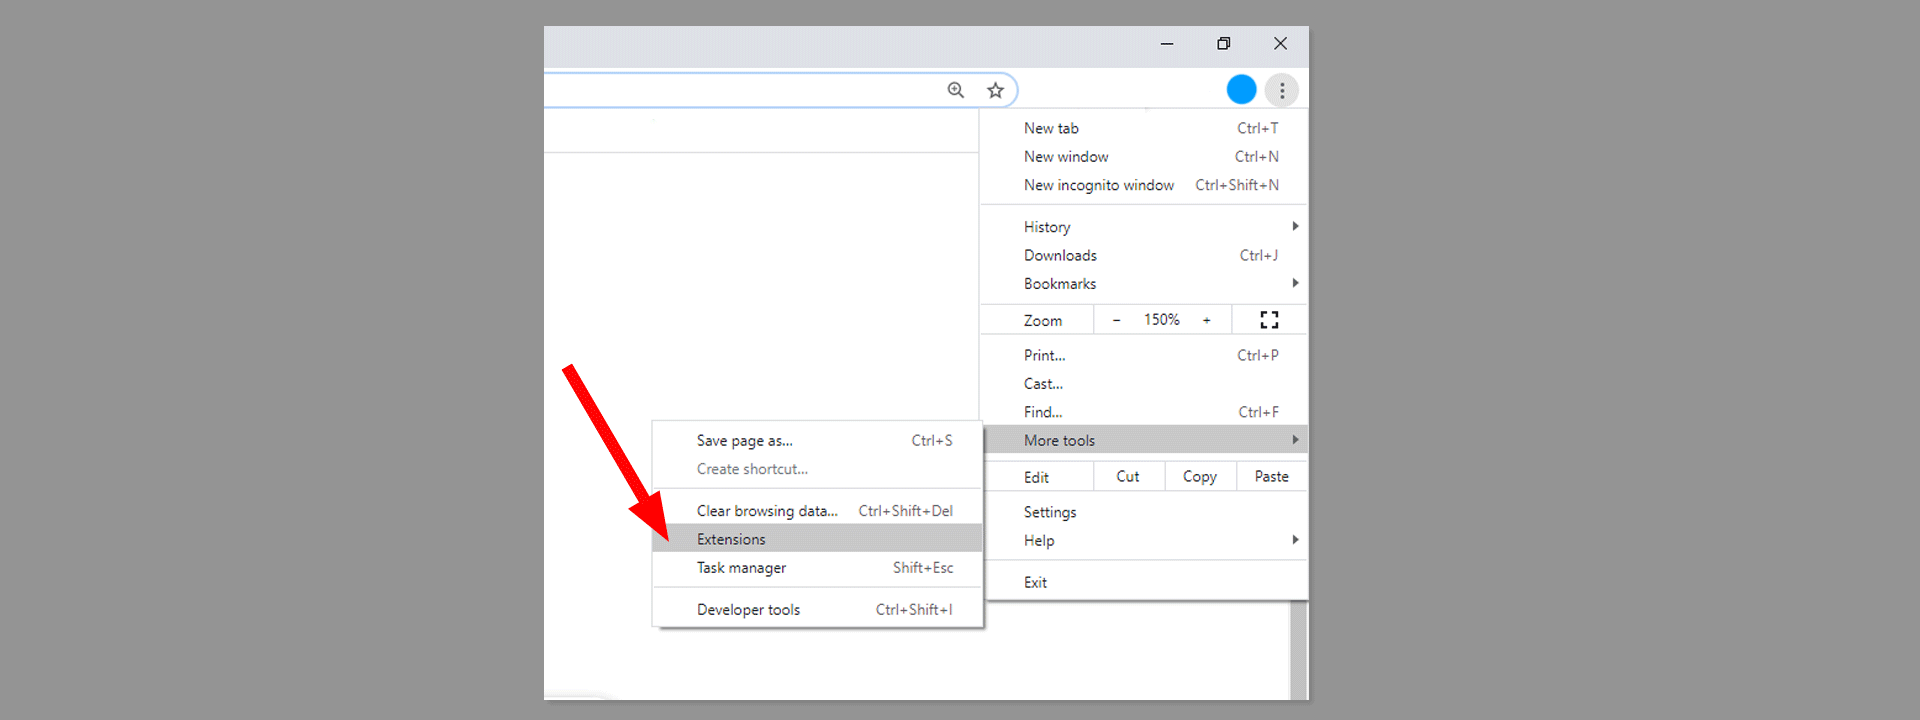 try using incognito mode cause extensions don't work there and see if google calendar is working or not.